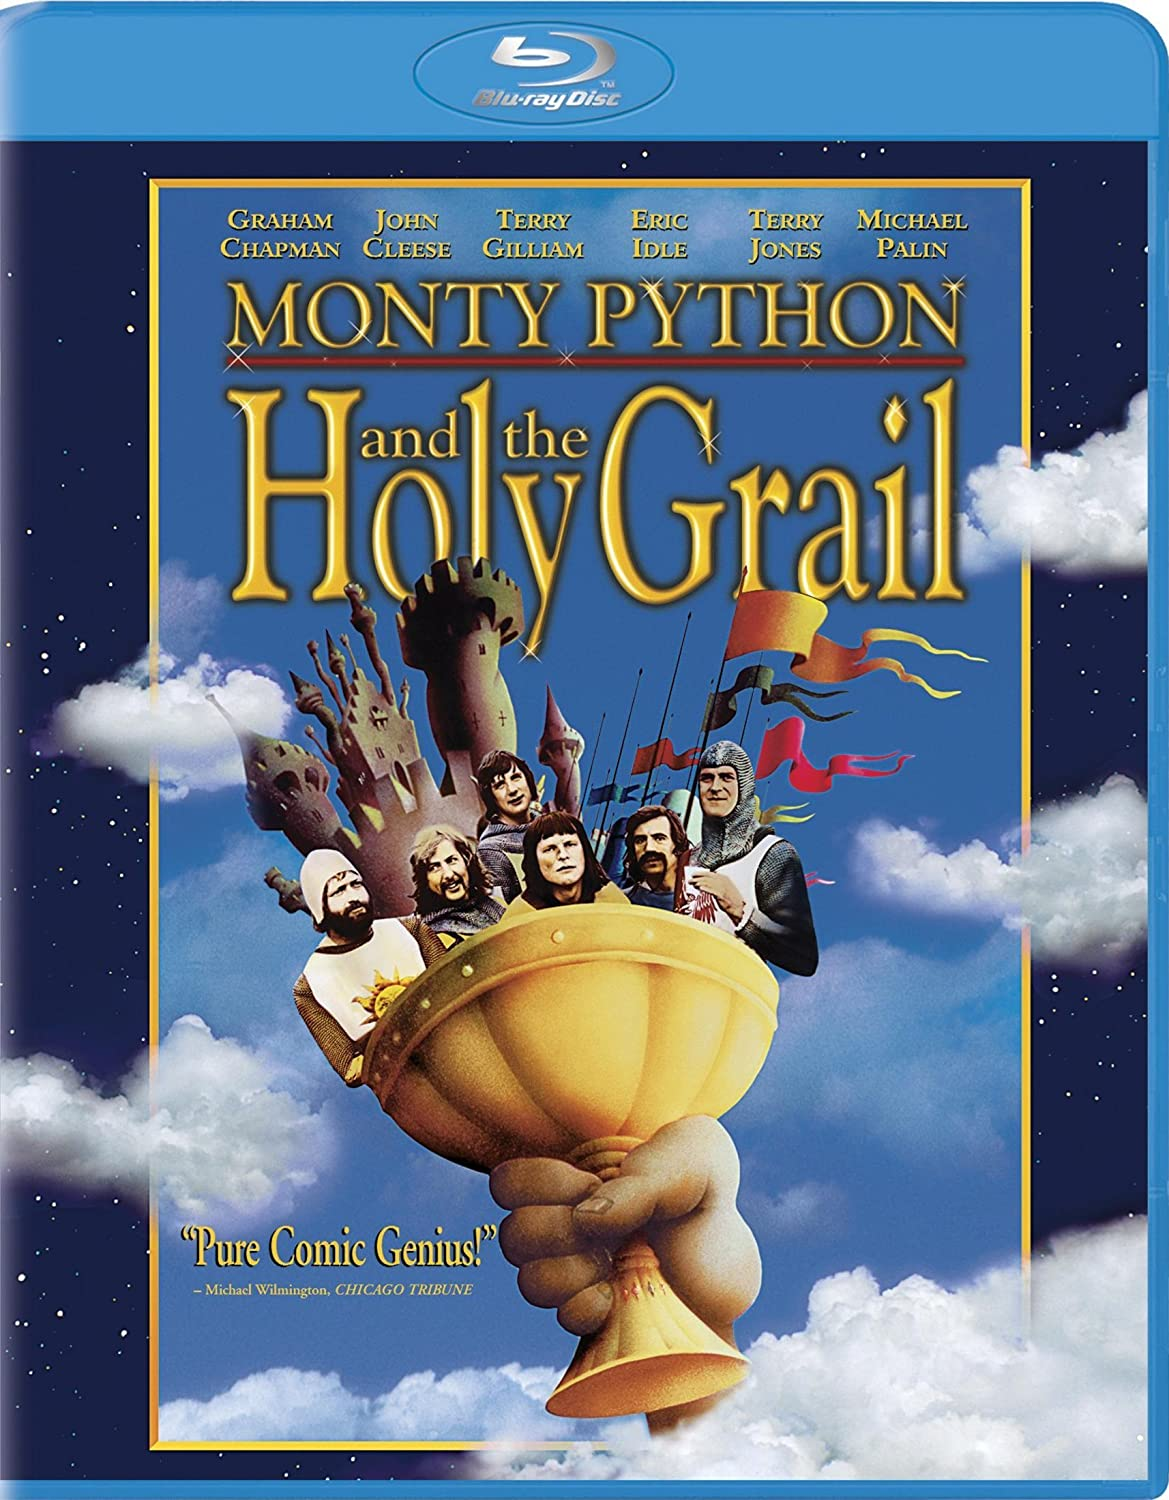 Knights of the round table monty python - Amazon Com Monty Python And The Holy Grail Blu Ray